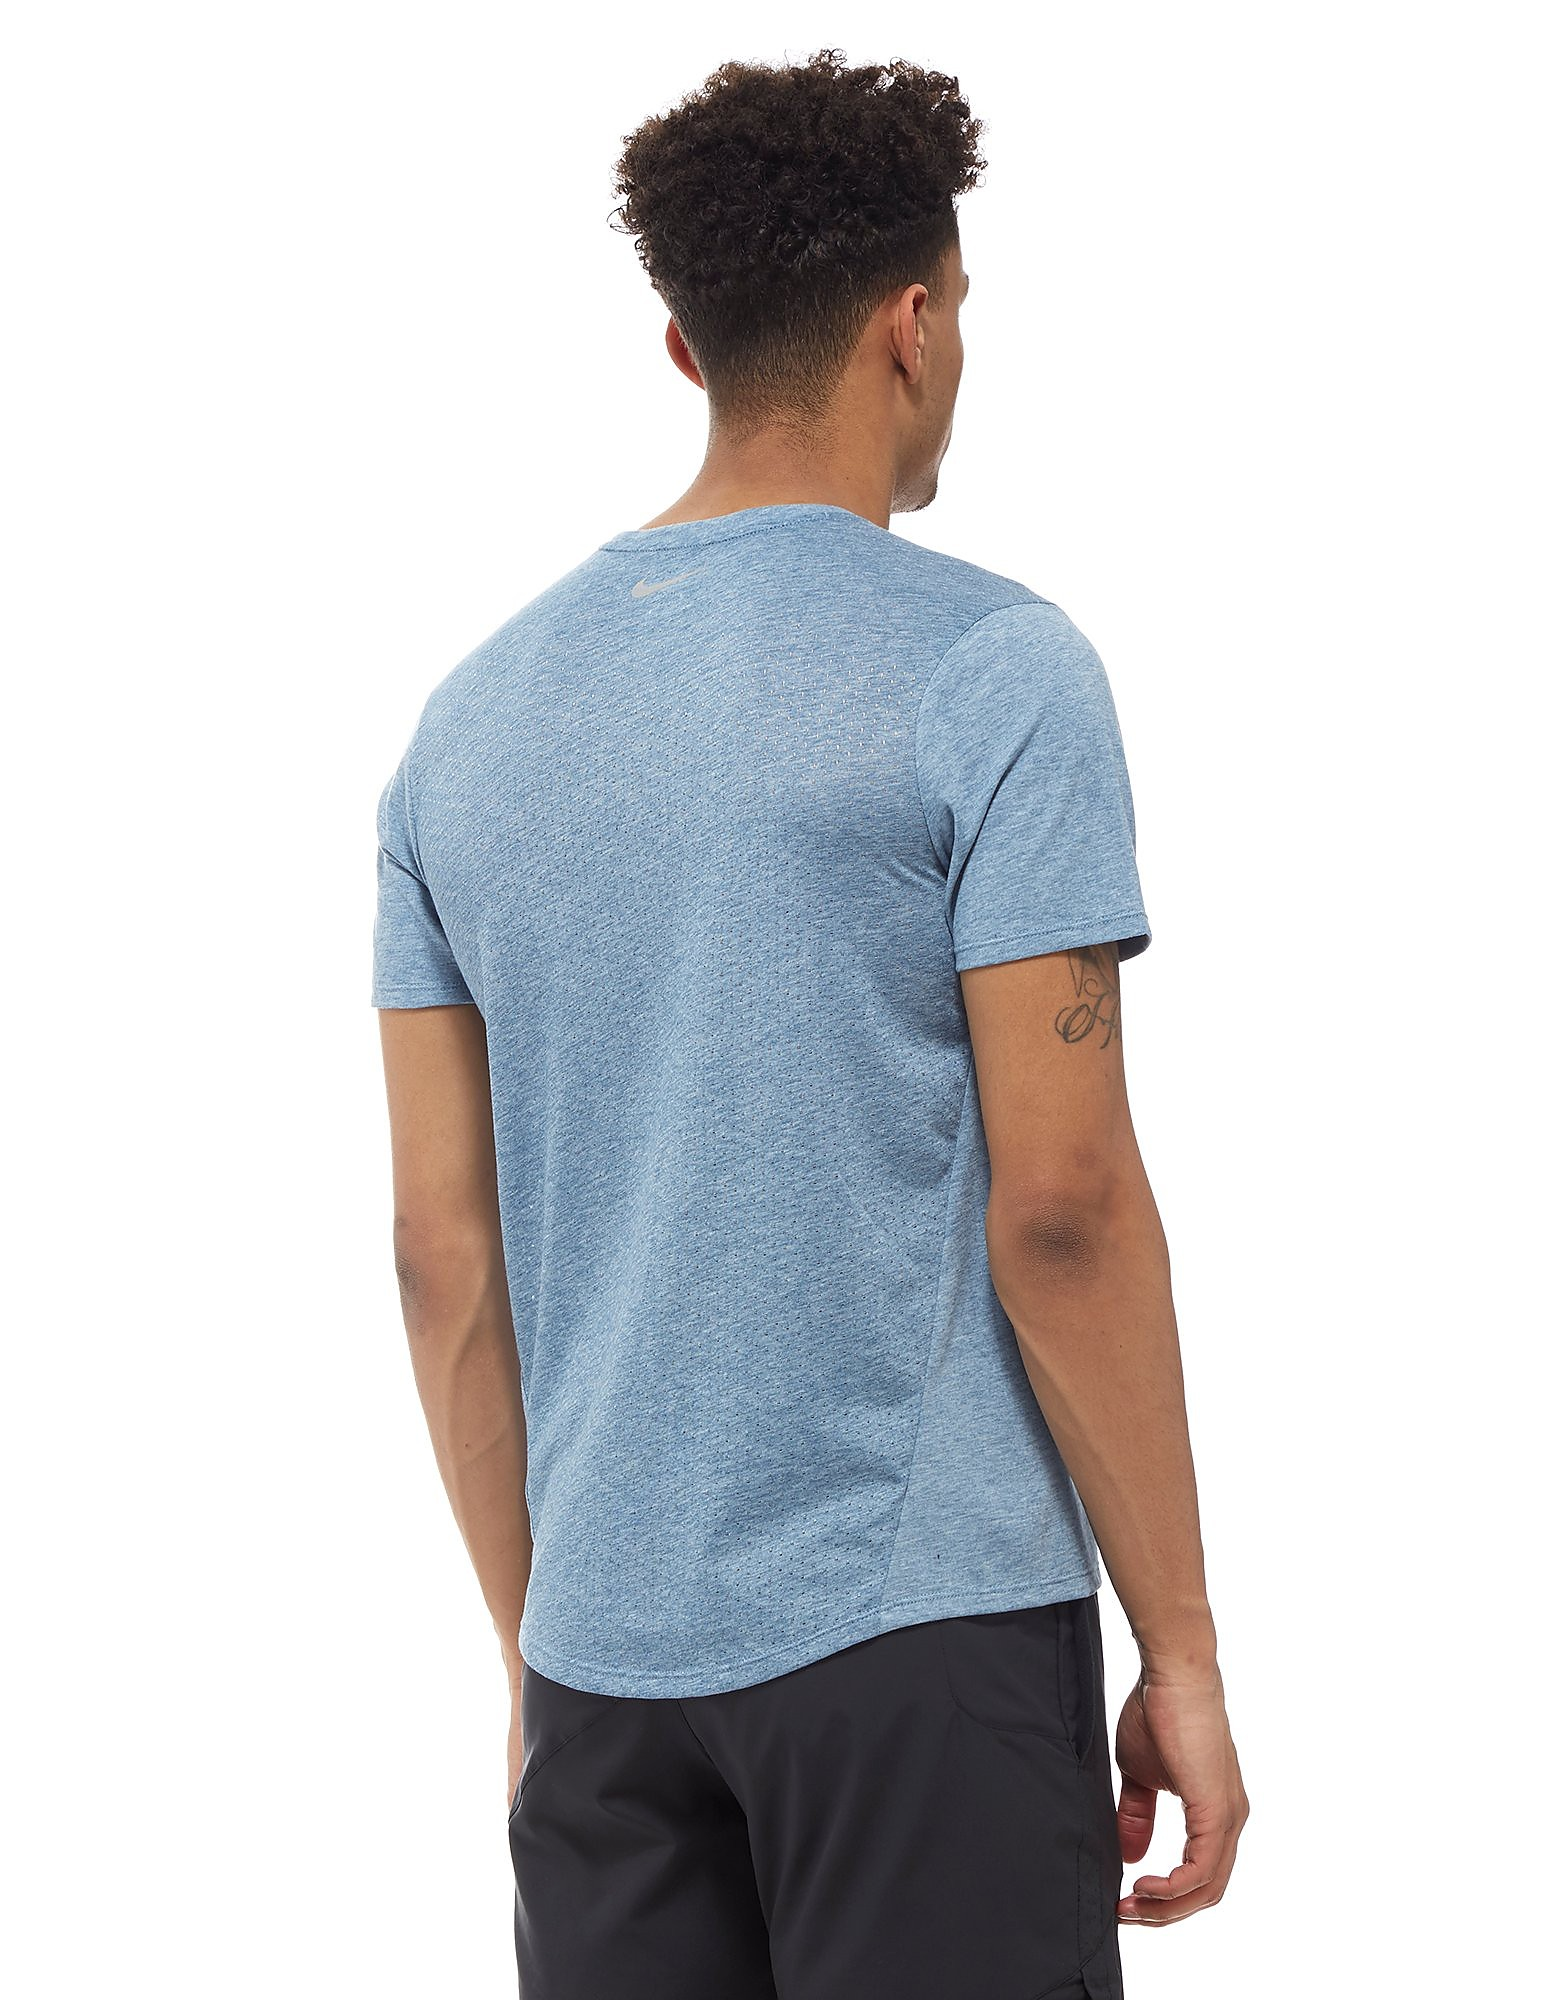 Nike Breathe Tailwind Short Sleeve Running Top